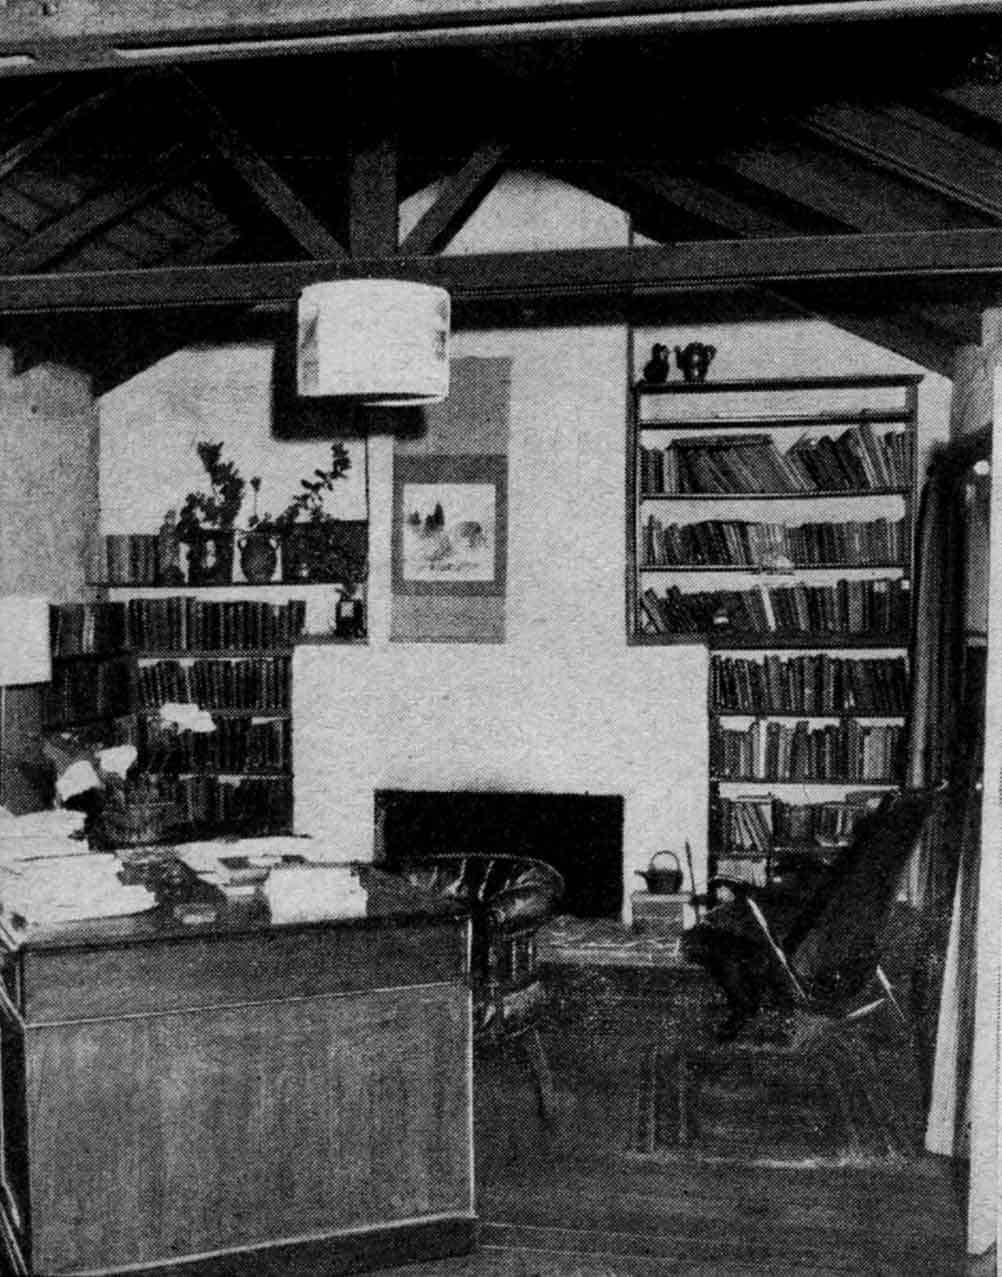 Interior of Professor Macmahon Ball's studio at Eltham